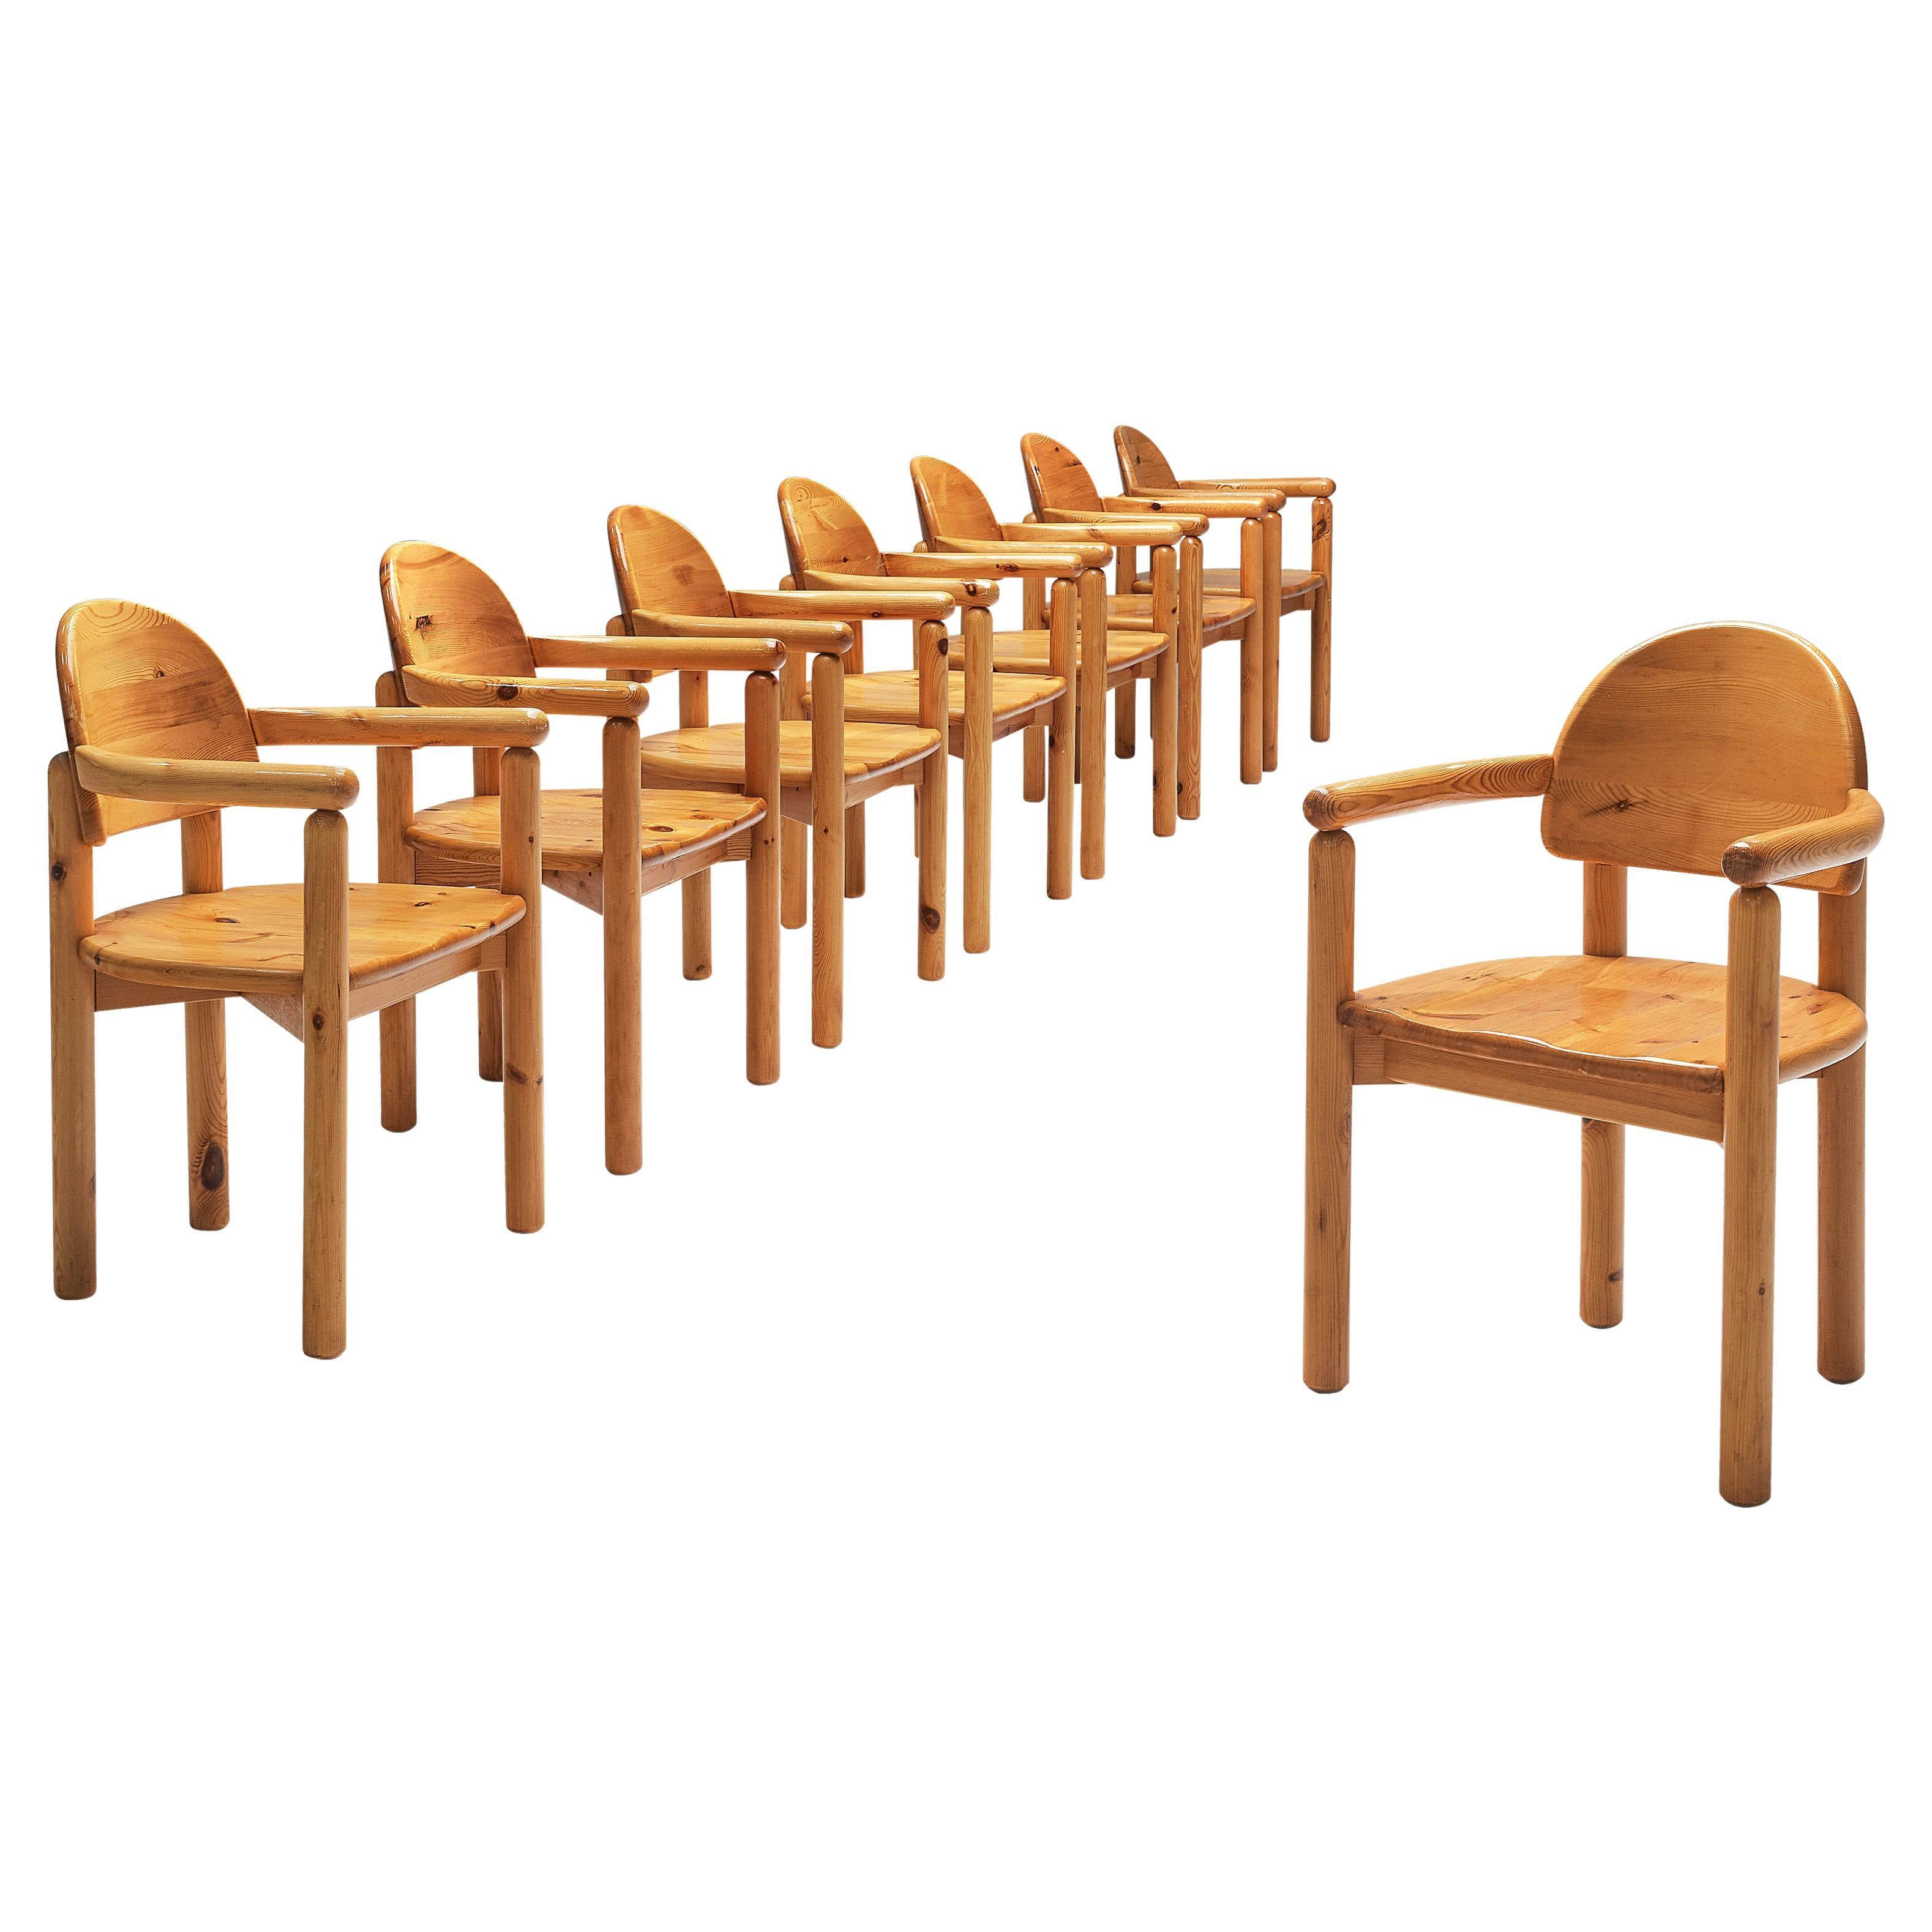 Rainer Daumiller Set of Eight Dining Chairs in Solid Pine